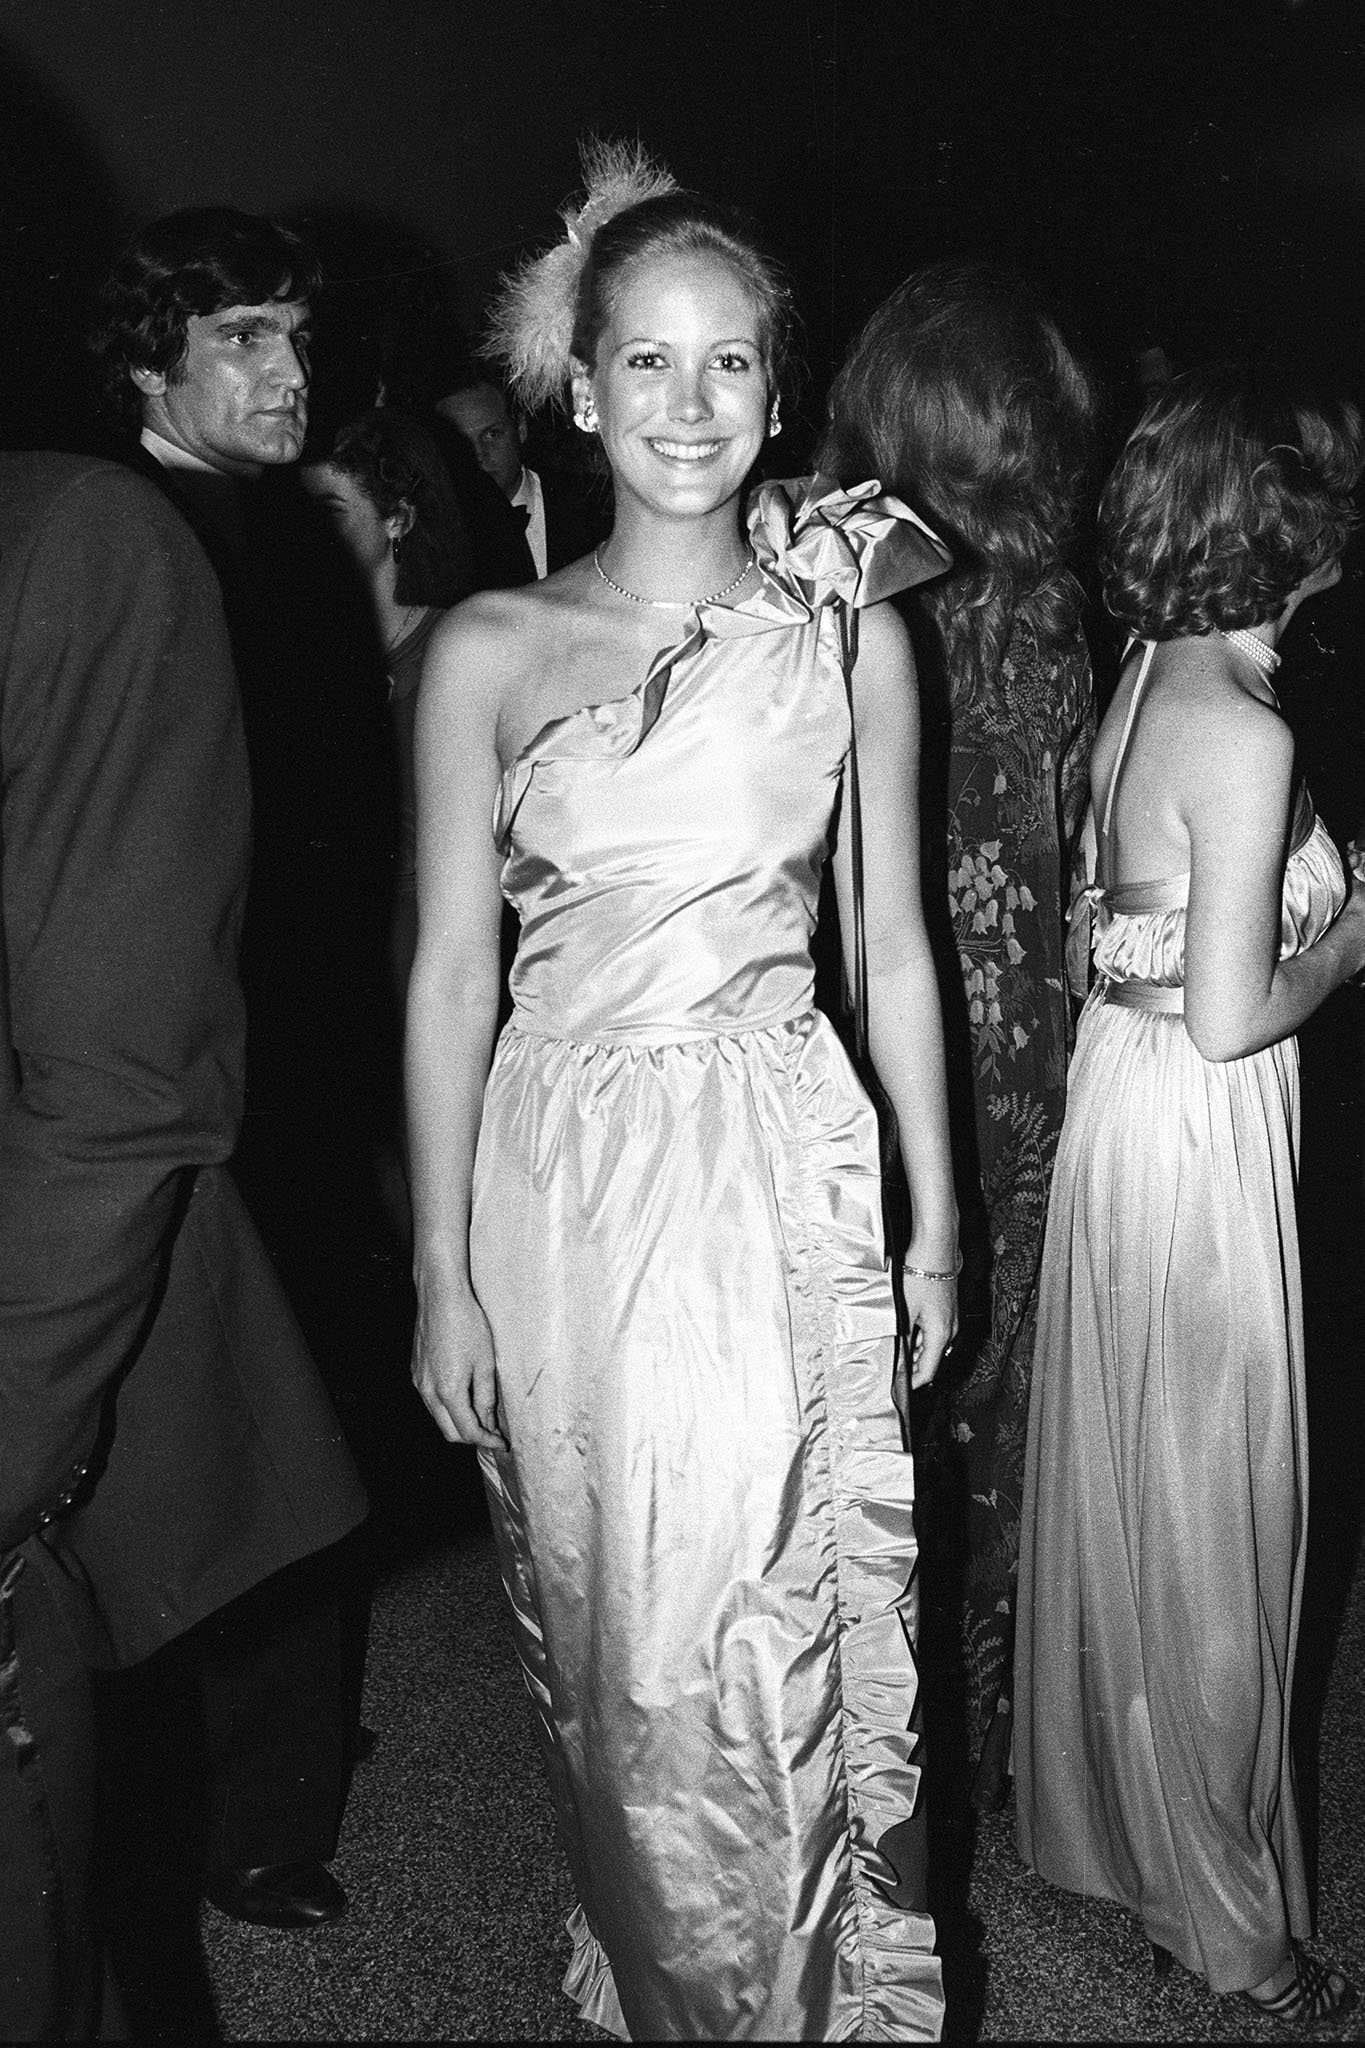 Nina Griscom attends the Metropolitan Museum of Art's joint 100th year birthday party/gala benefit to help wipe out its operating deficit, 1980.